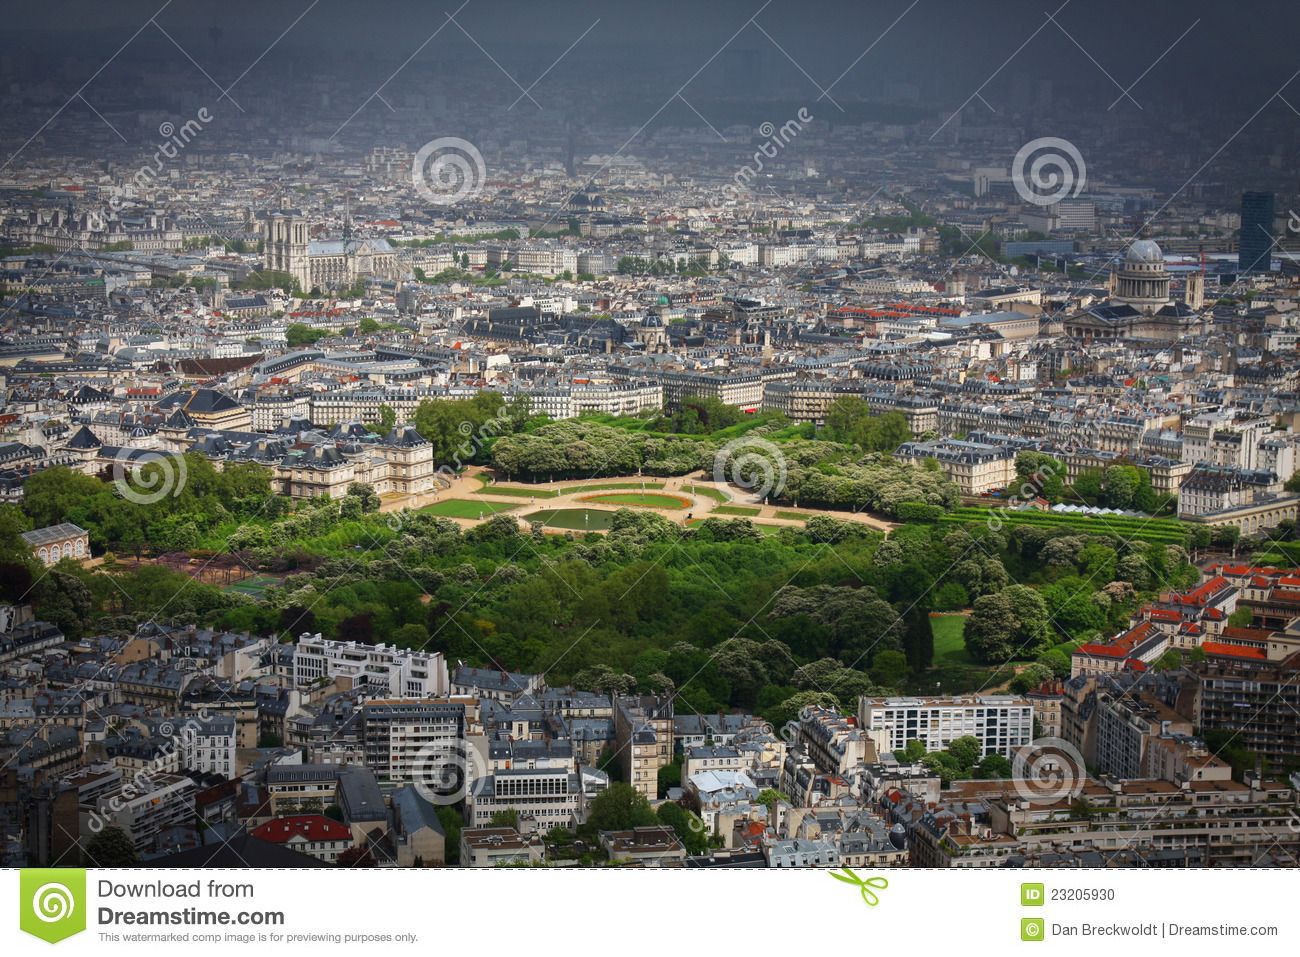 Jardin du luxembourg in paris stock photo image 23205930 for Jardin du luxembourg